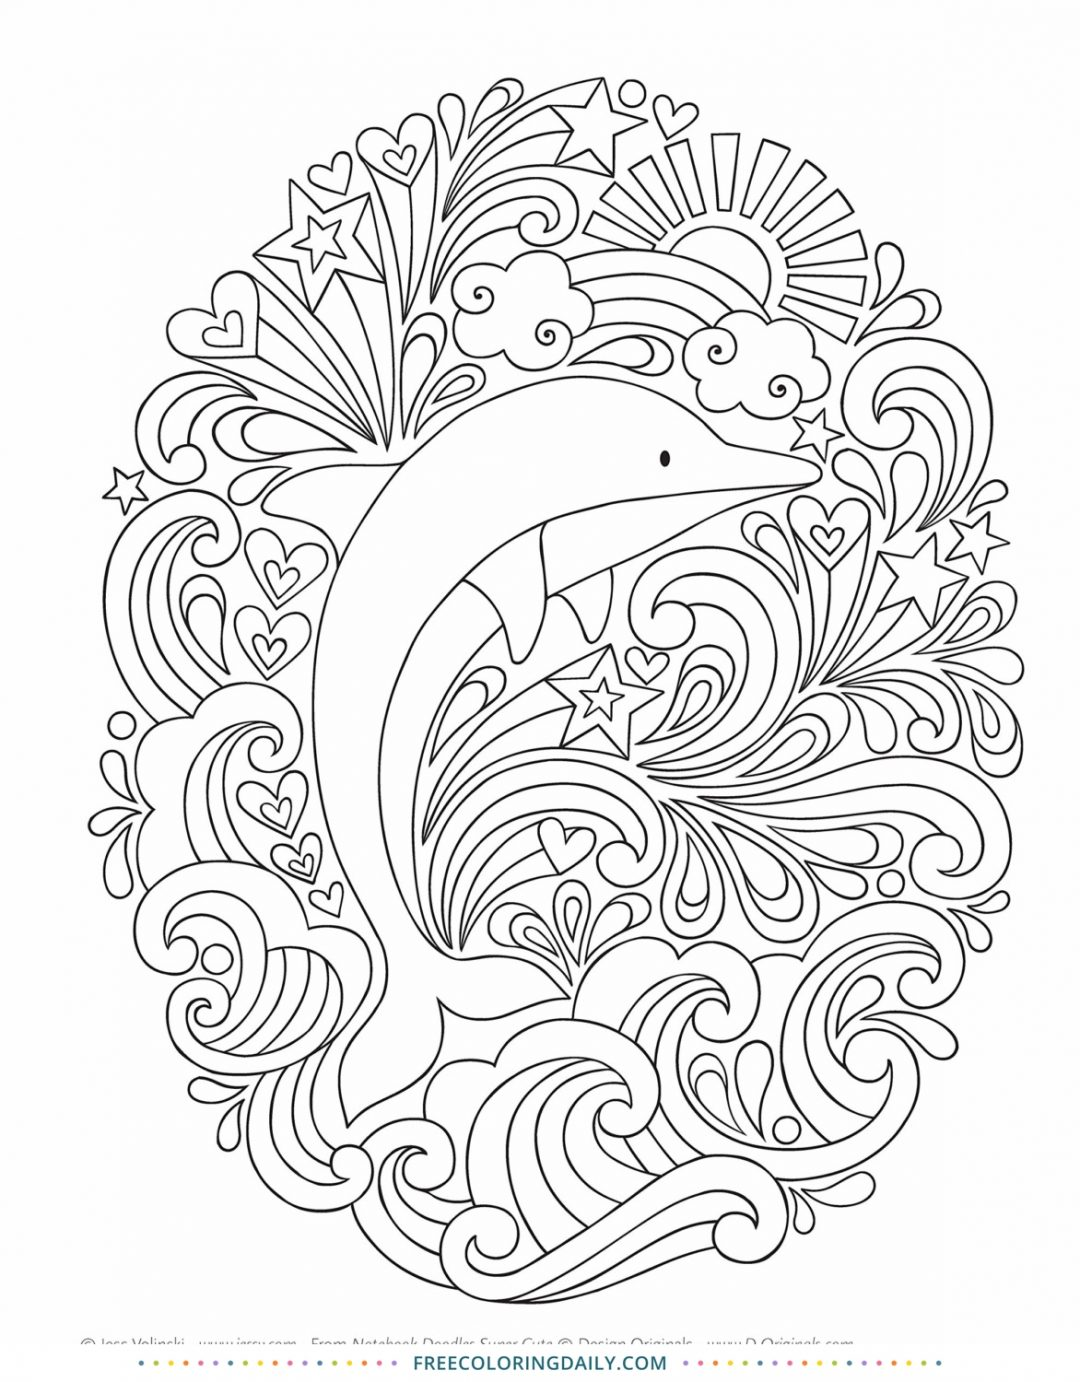 Free Dolphin Swirls Coloring